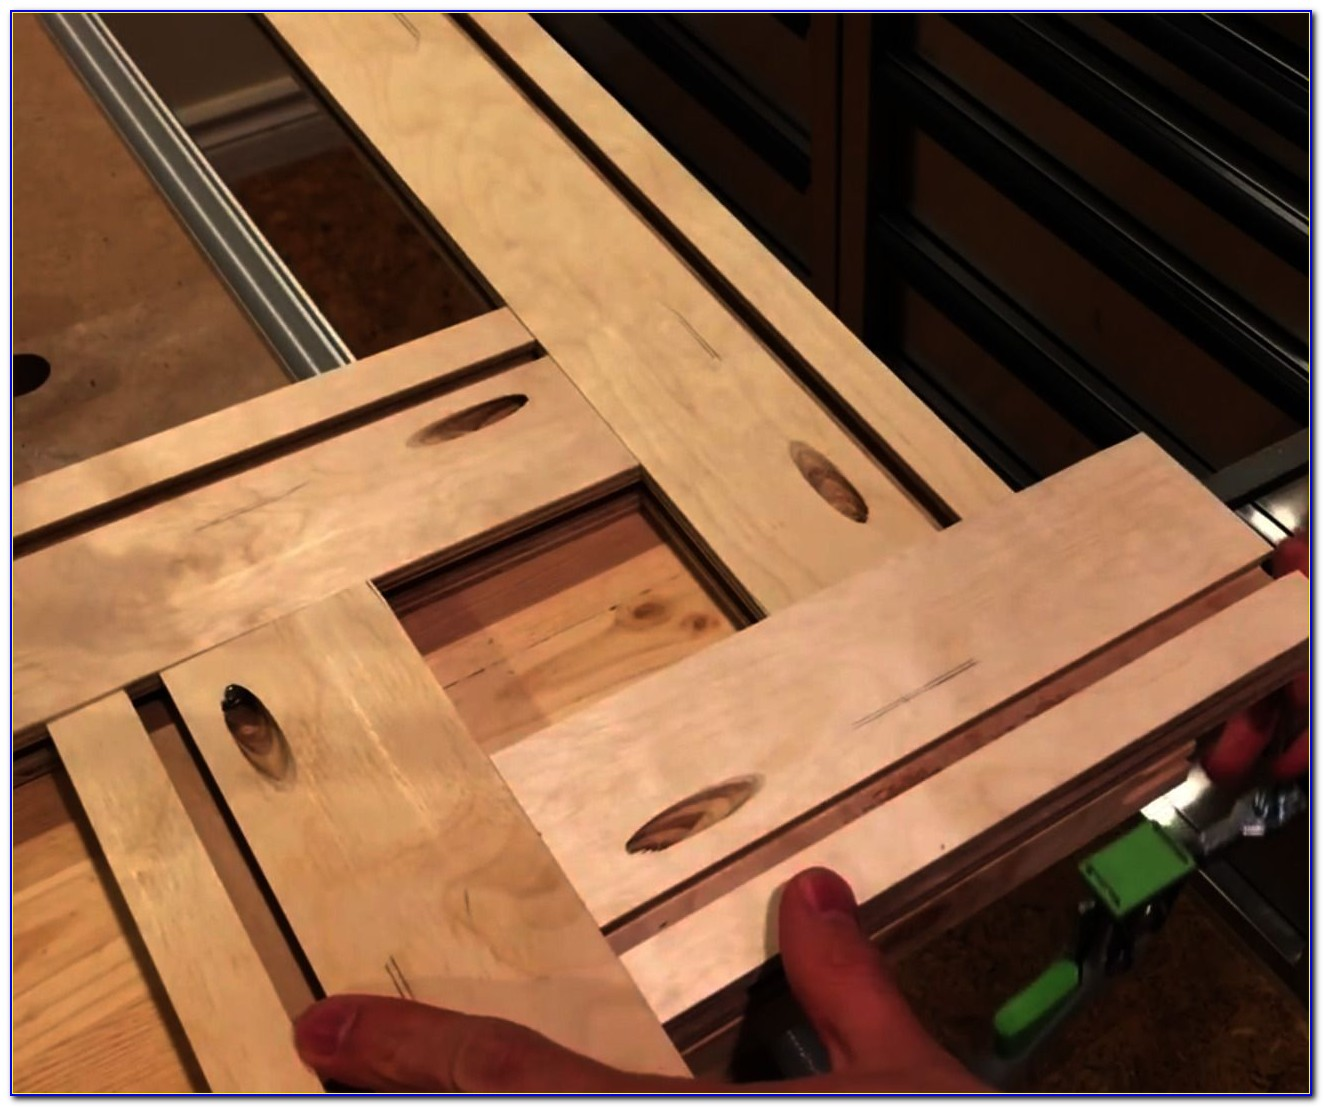 Wood Router Templates